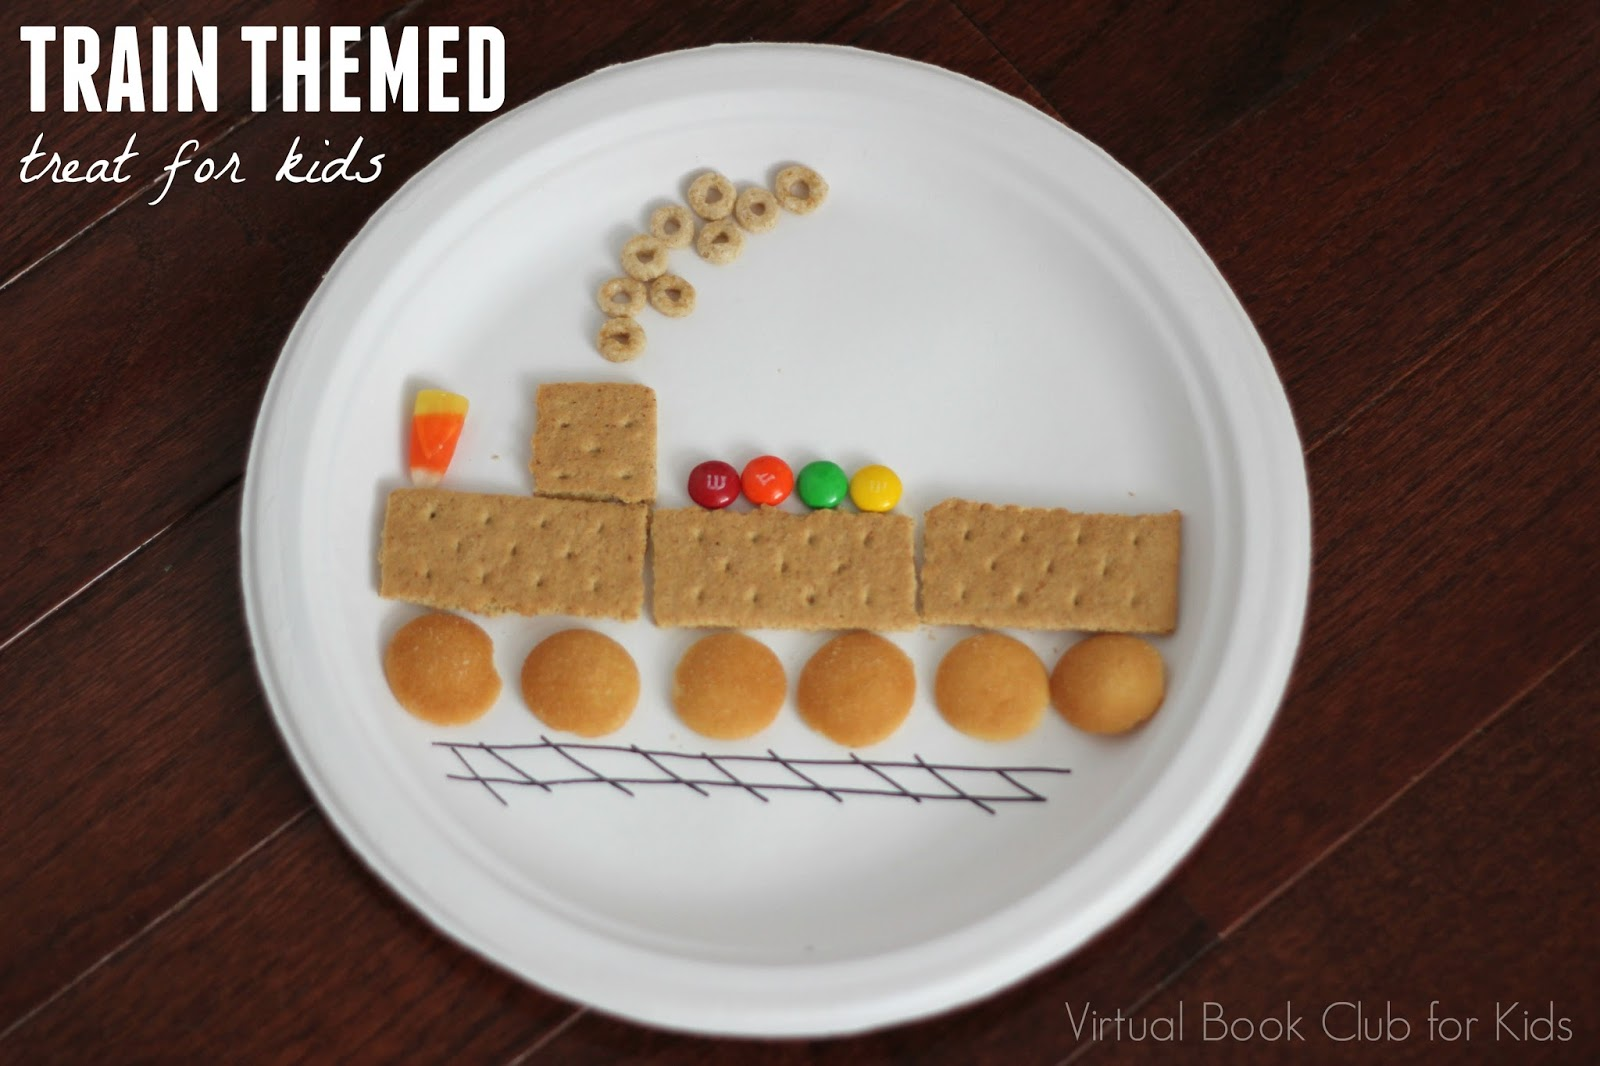 Train Themed Treat For Kids